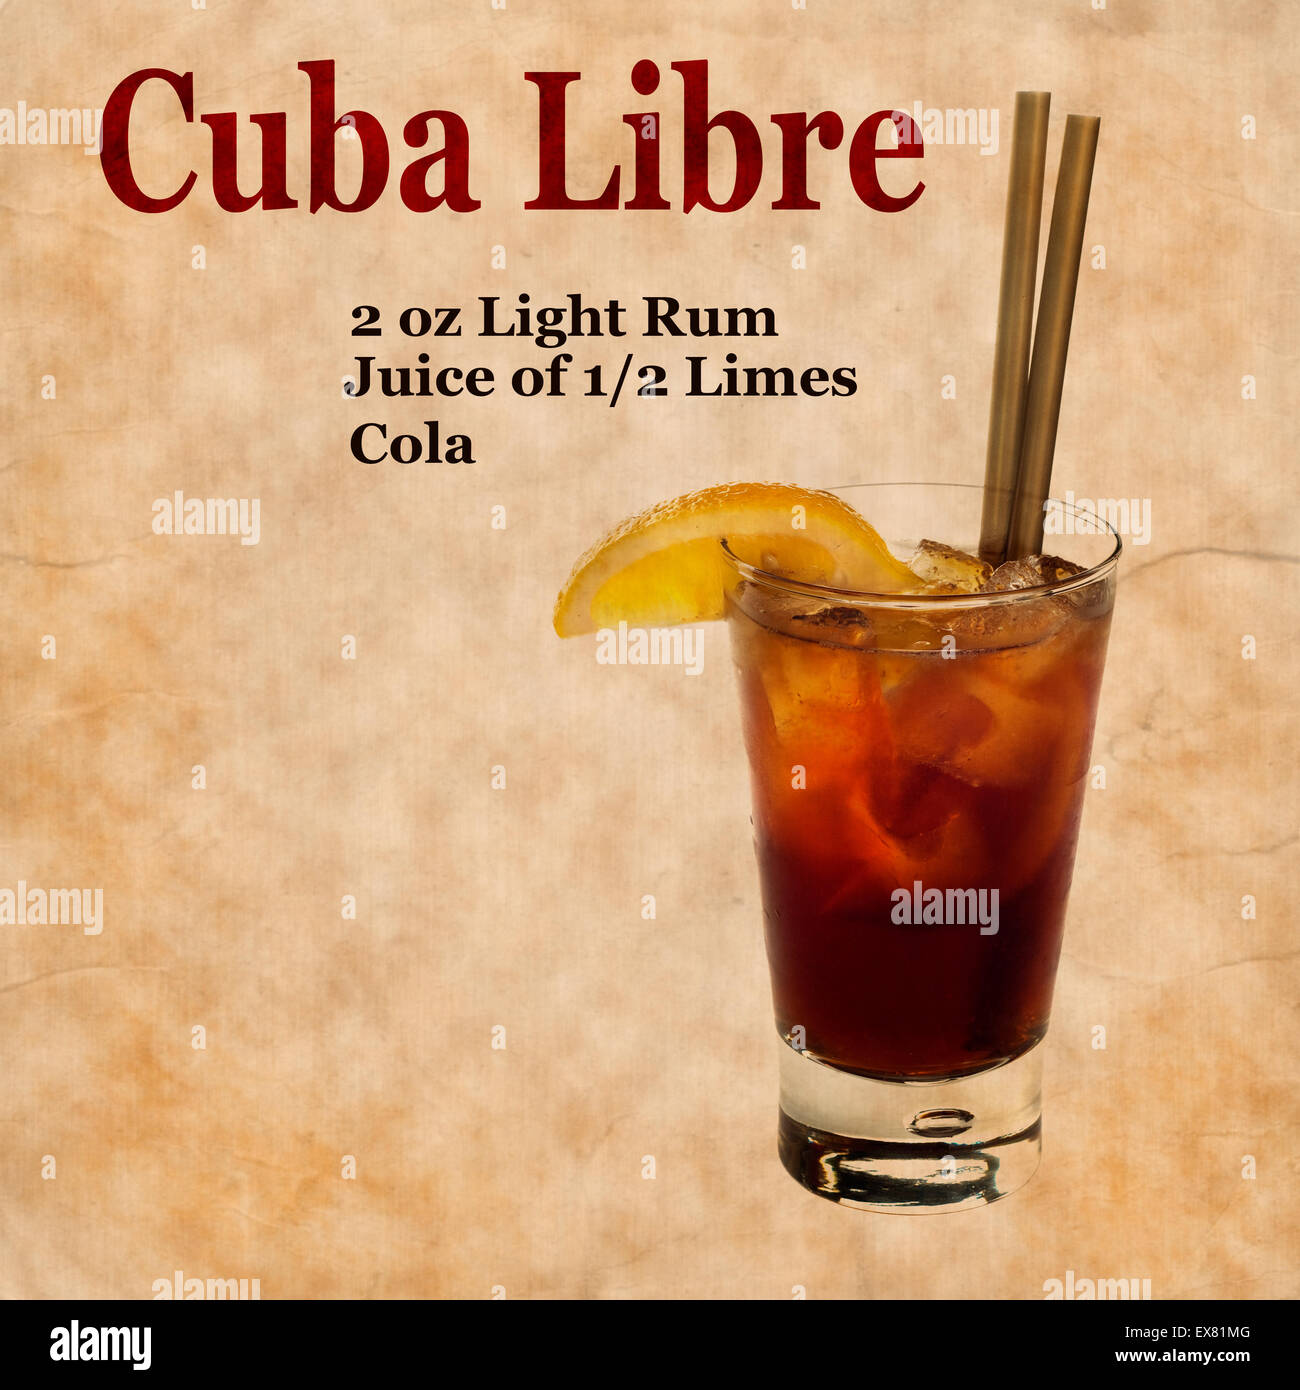 Cuba Libre Cocktail Lf Fox News Latino Ted Cruz Warming Up To Donald Trump